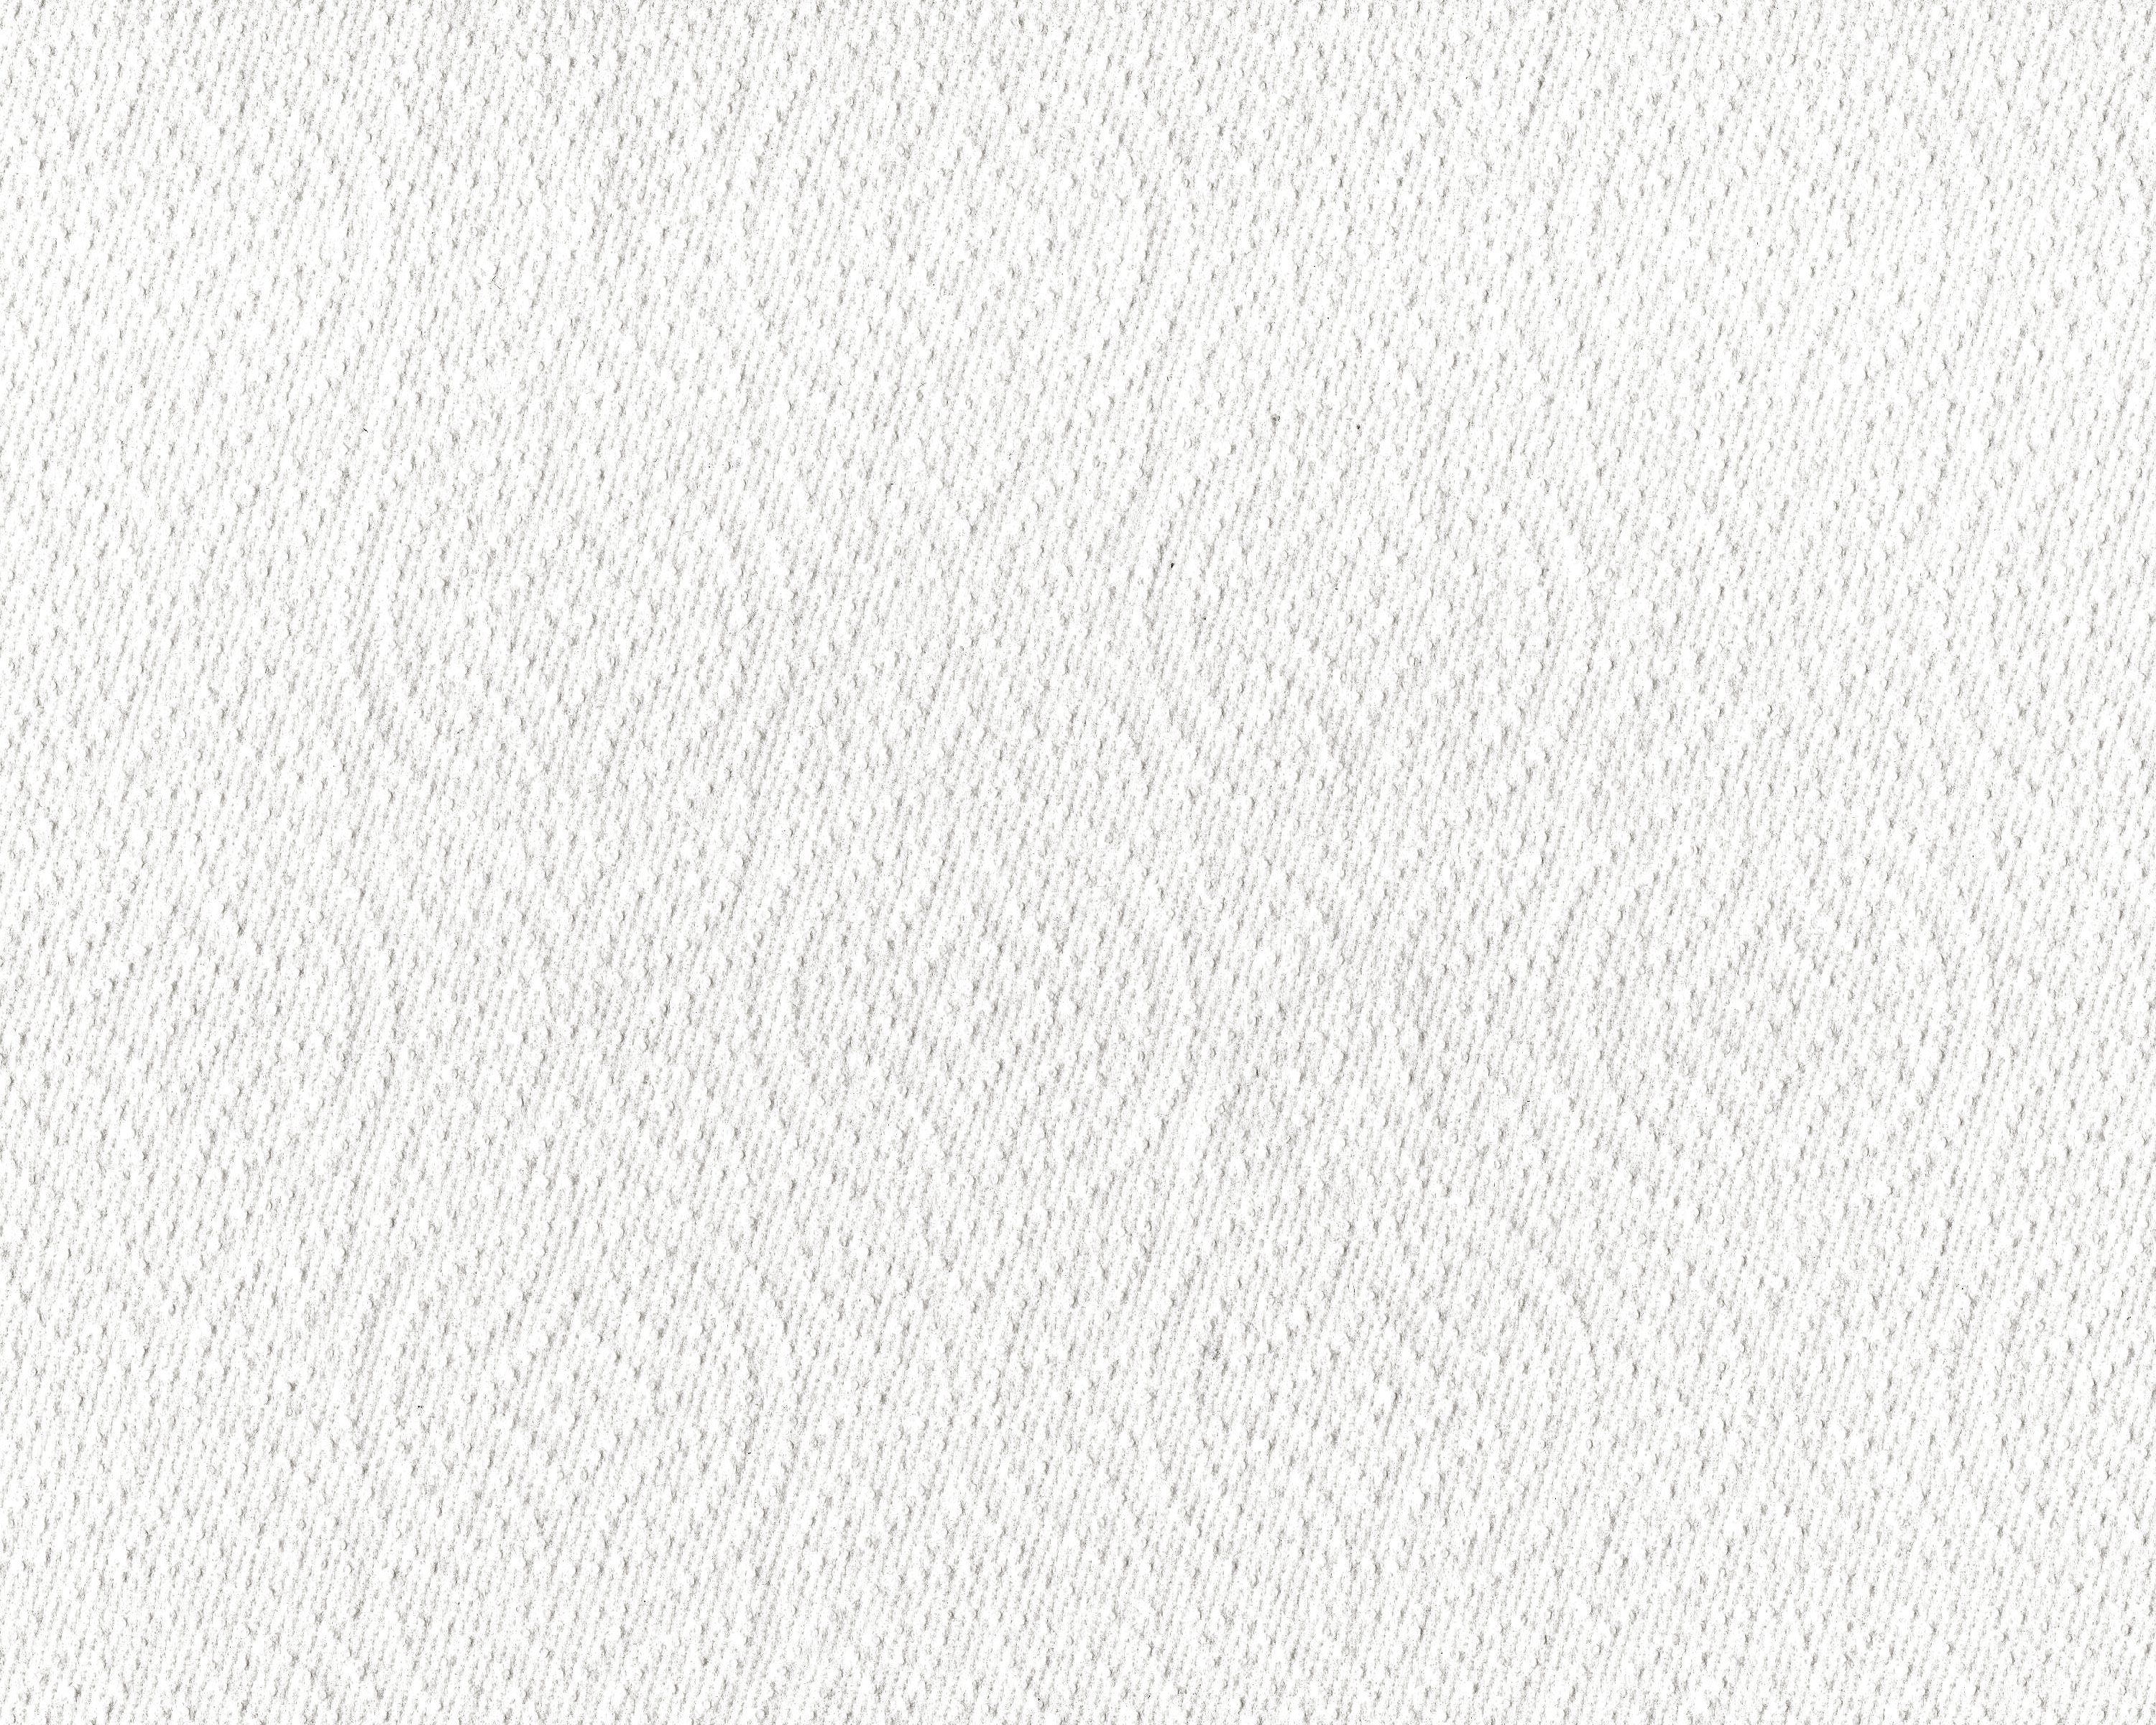 Off White Paper Textured Background White paper towel texture #10549